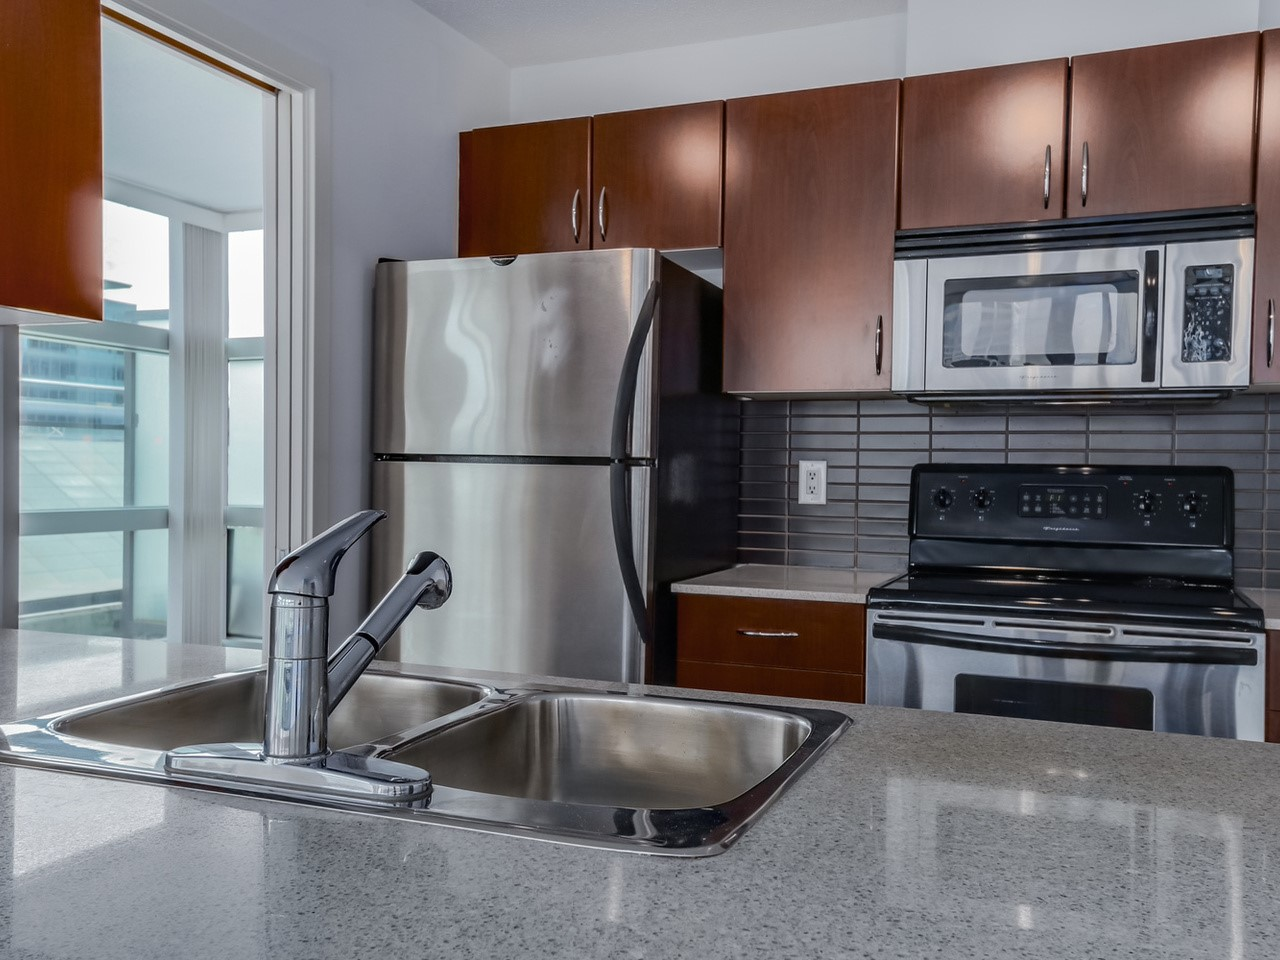 Vancouver investment property property sale news for High end appliances for sale